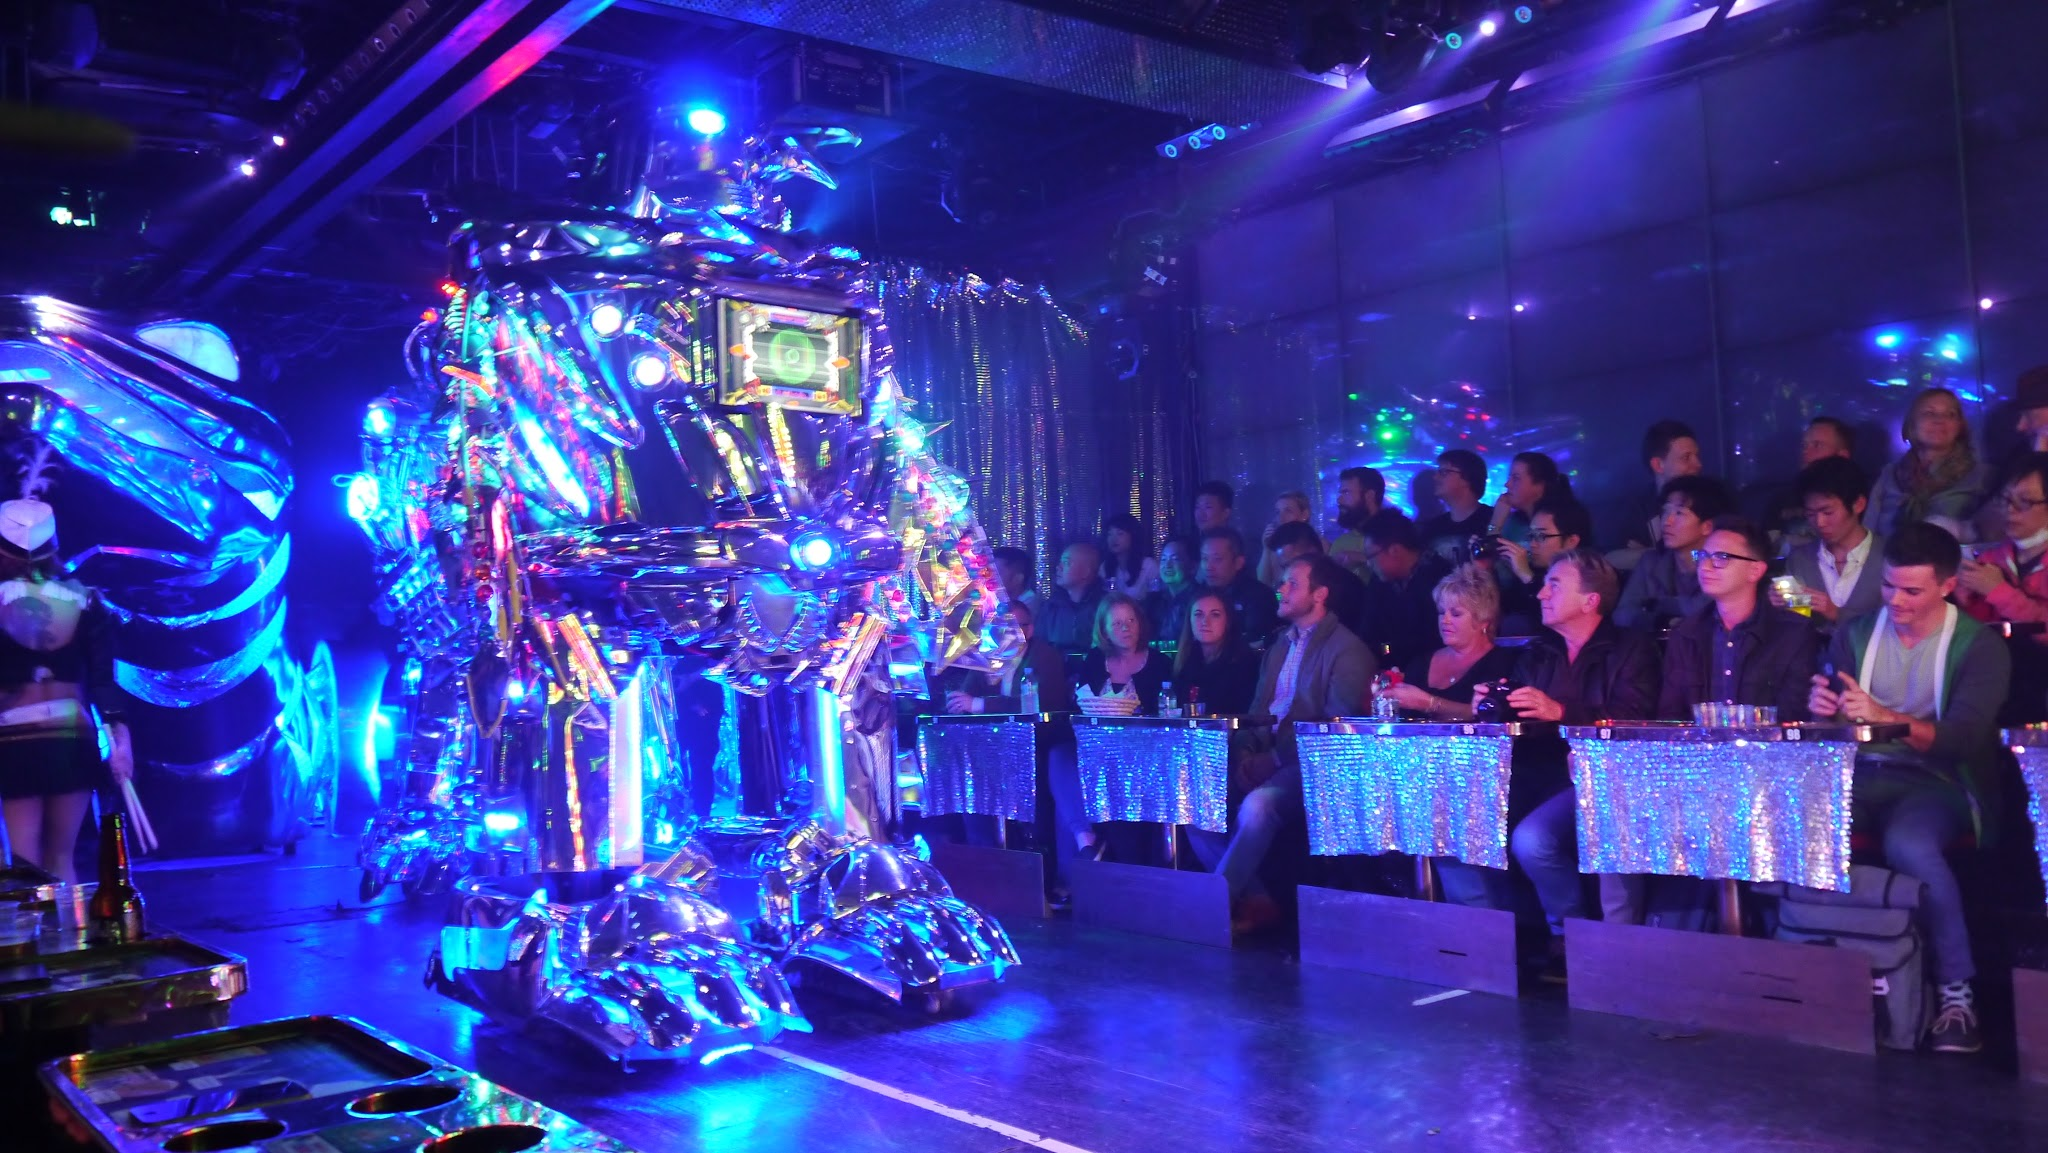 Robot restaurant mecha